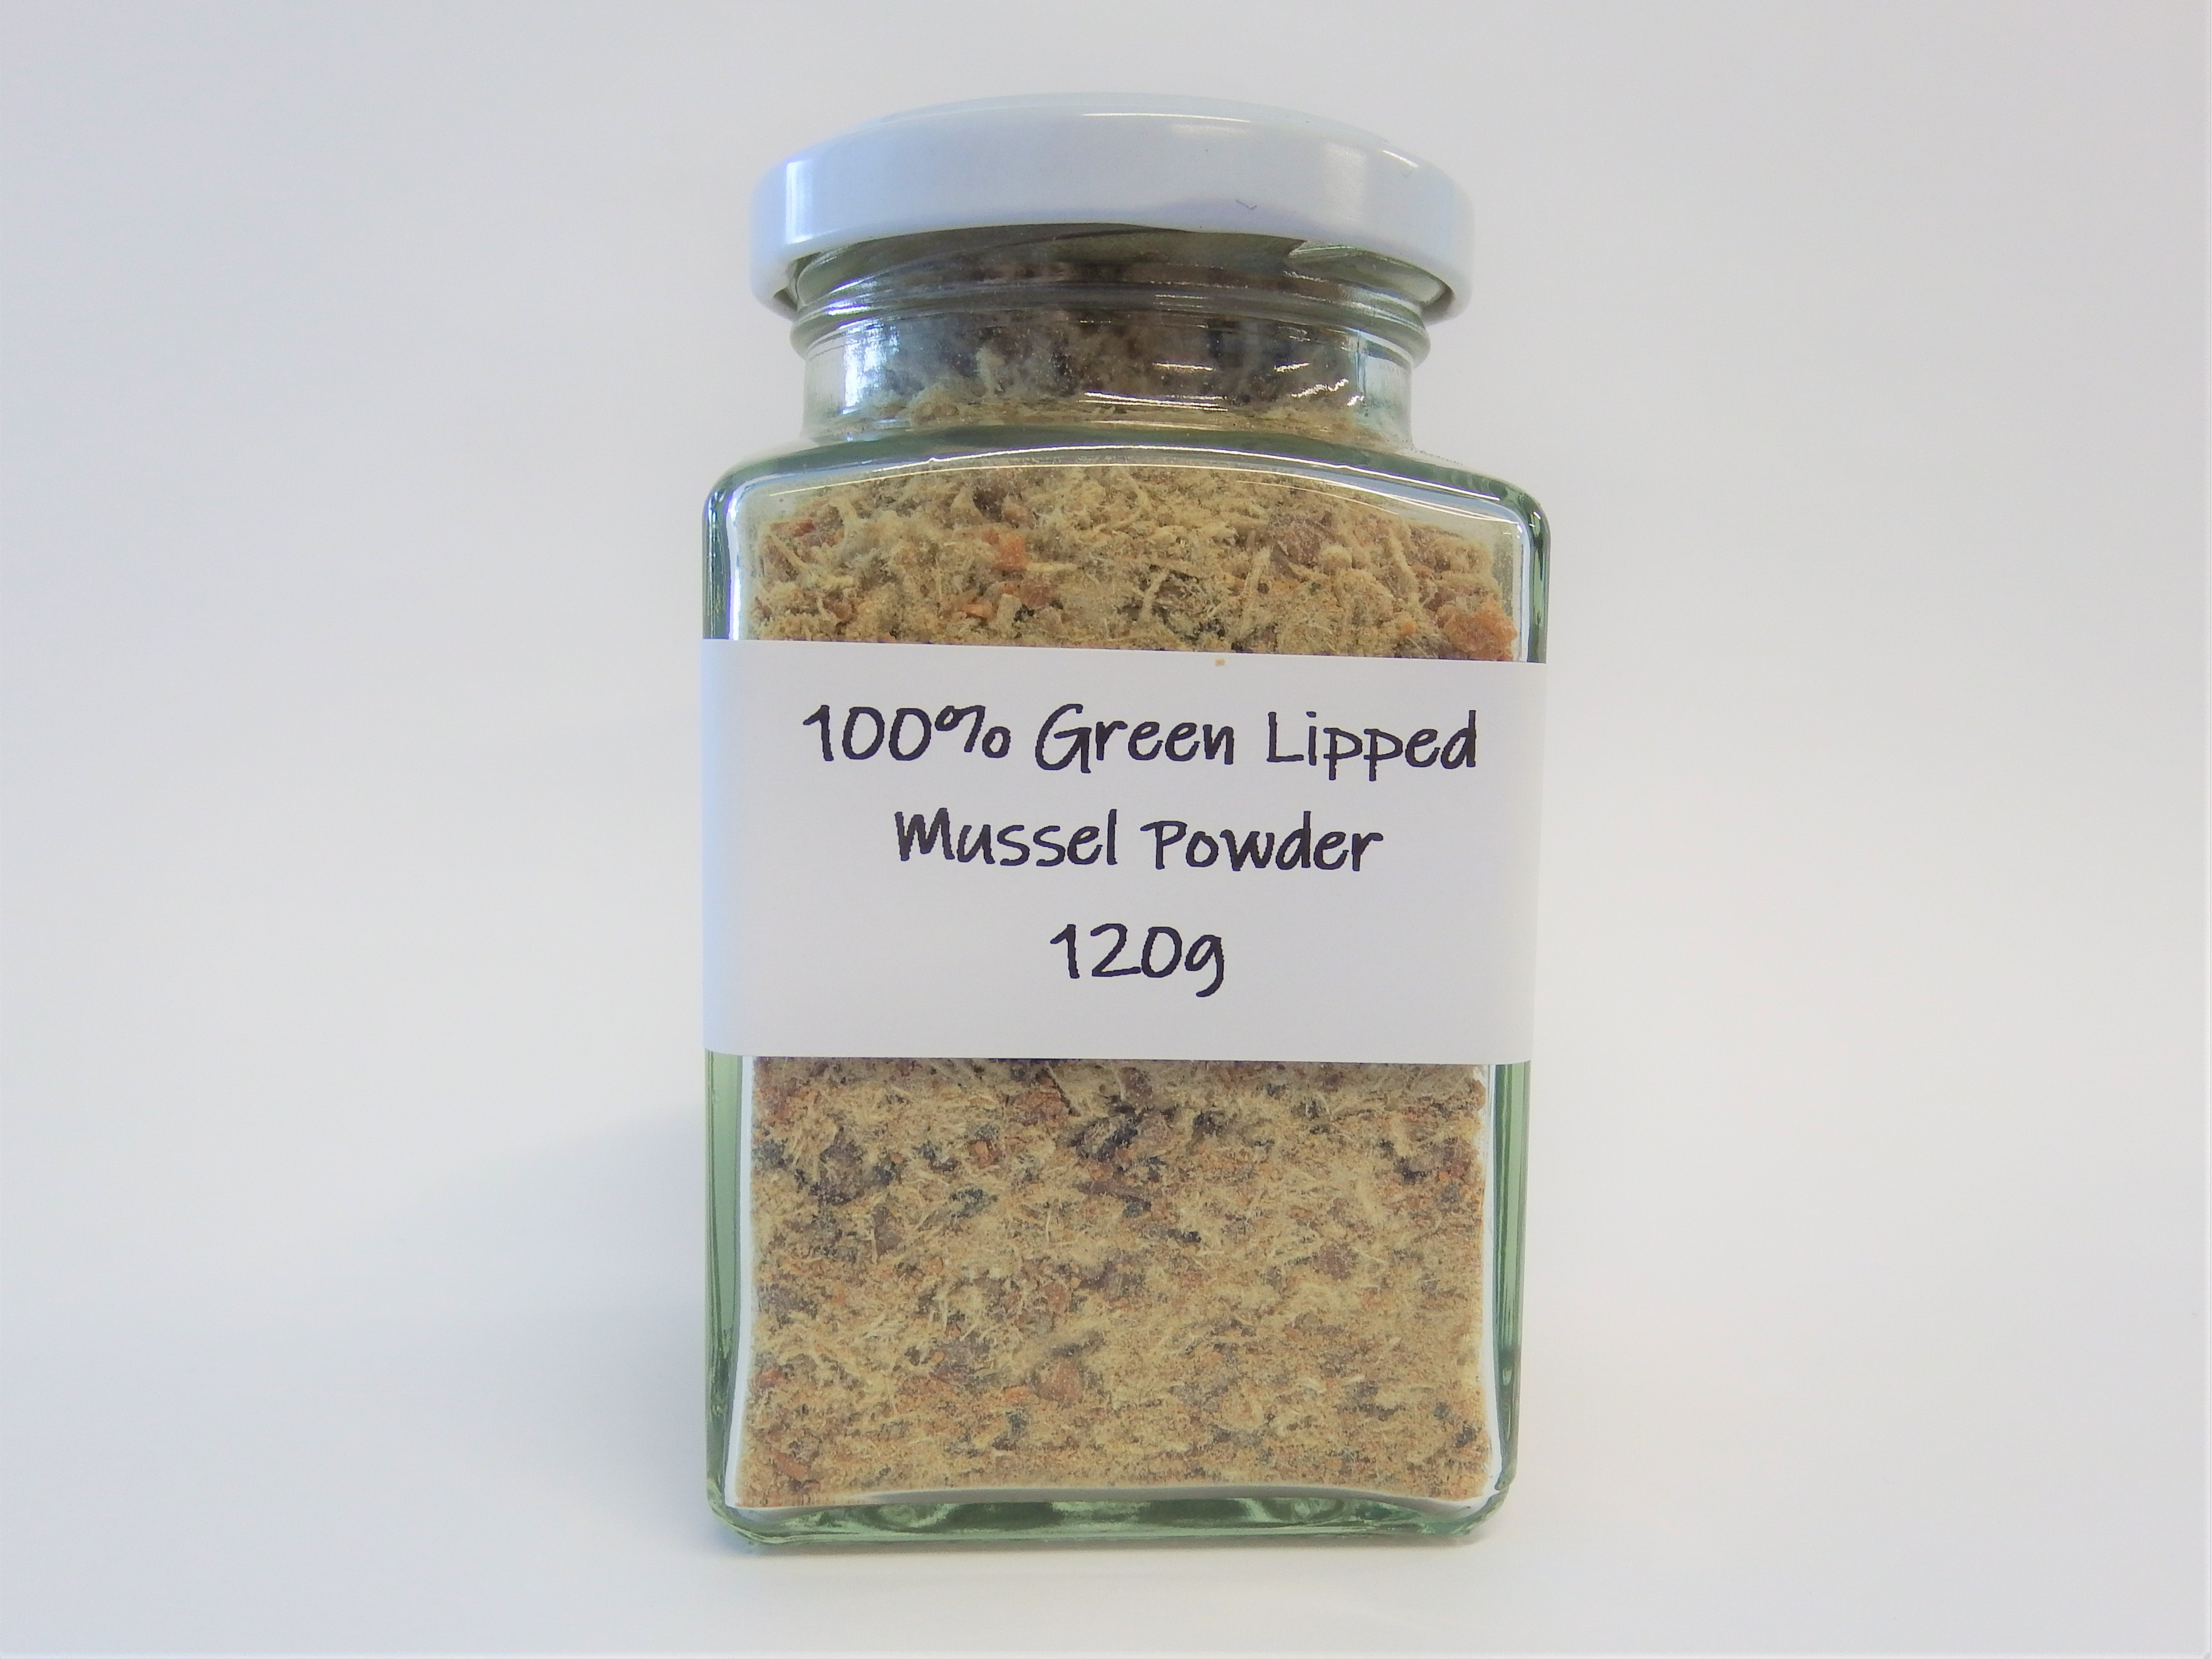 Weekly Mega Sale - 25% off 100% NZ Green Lipped Mussel Powder